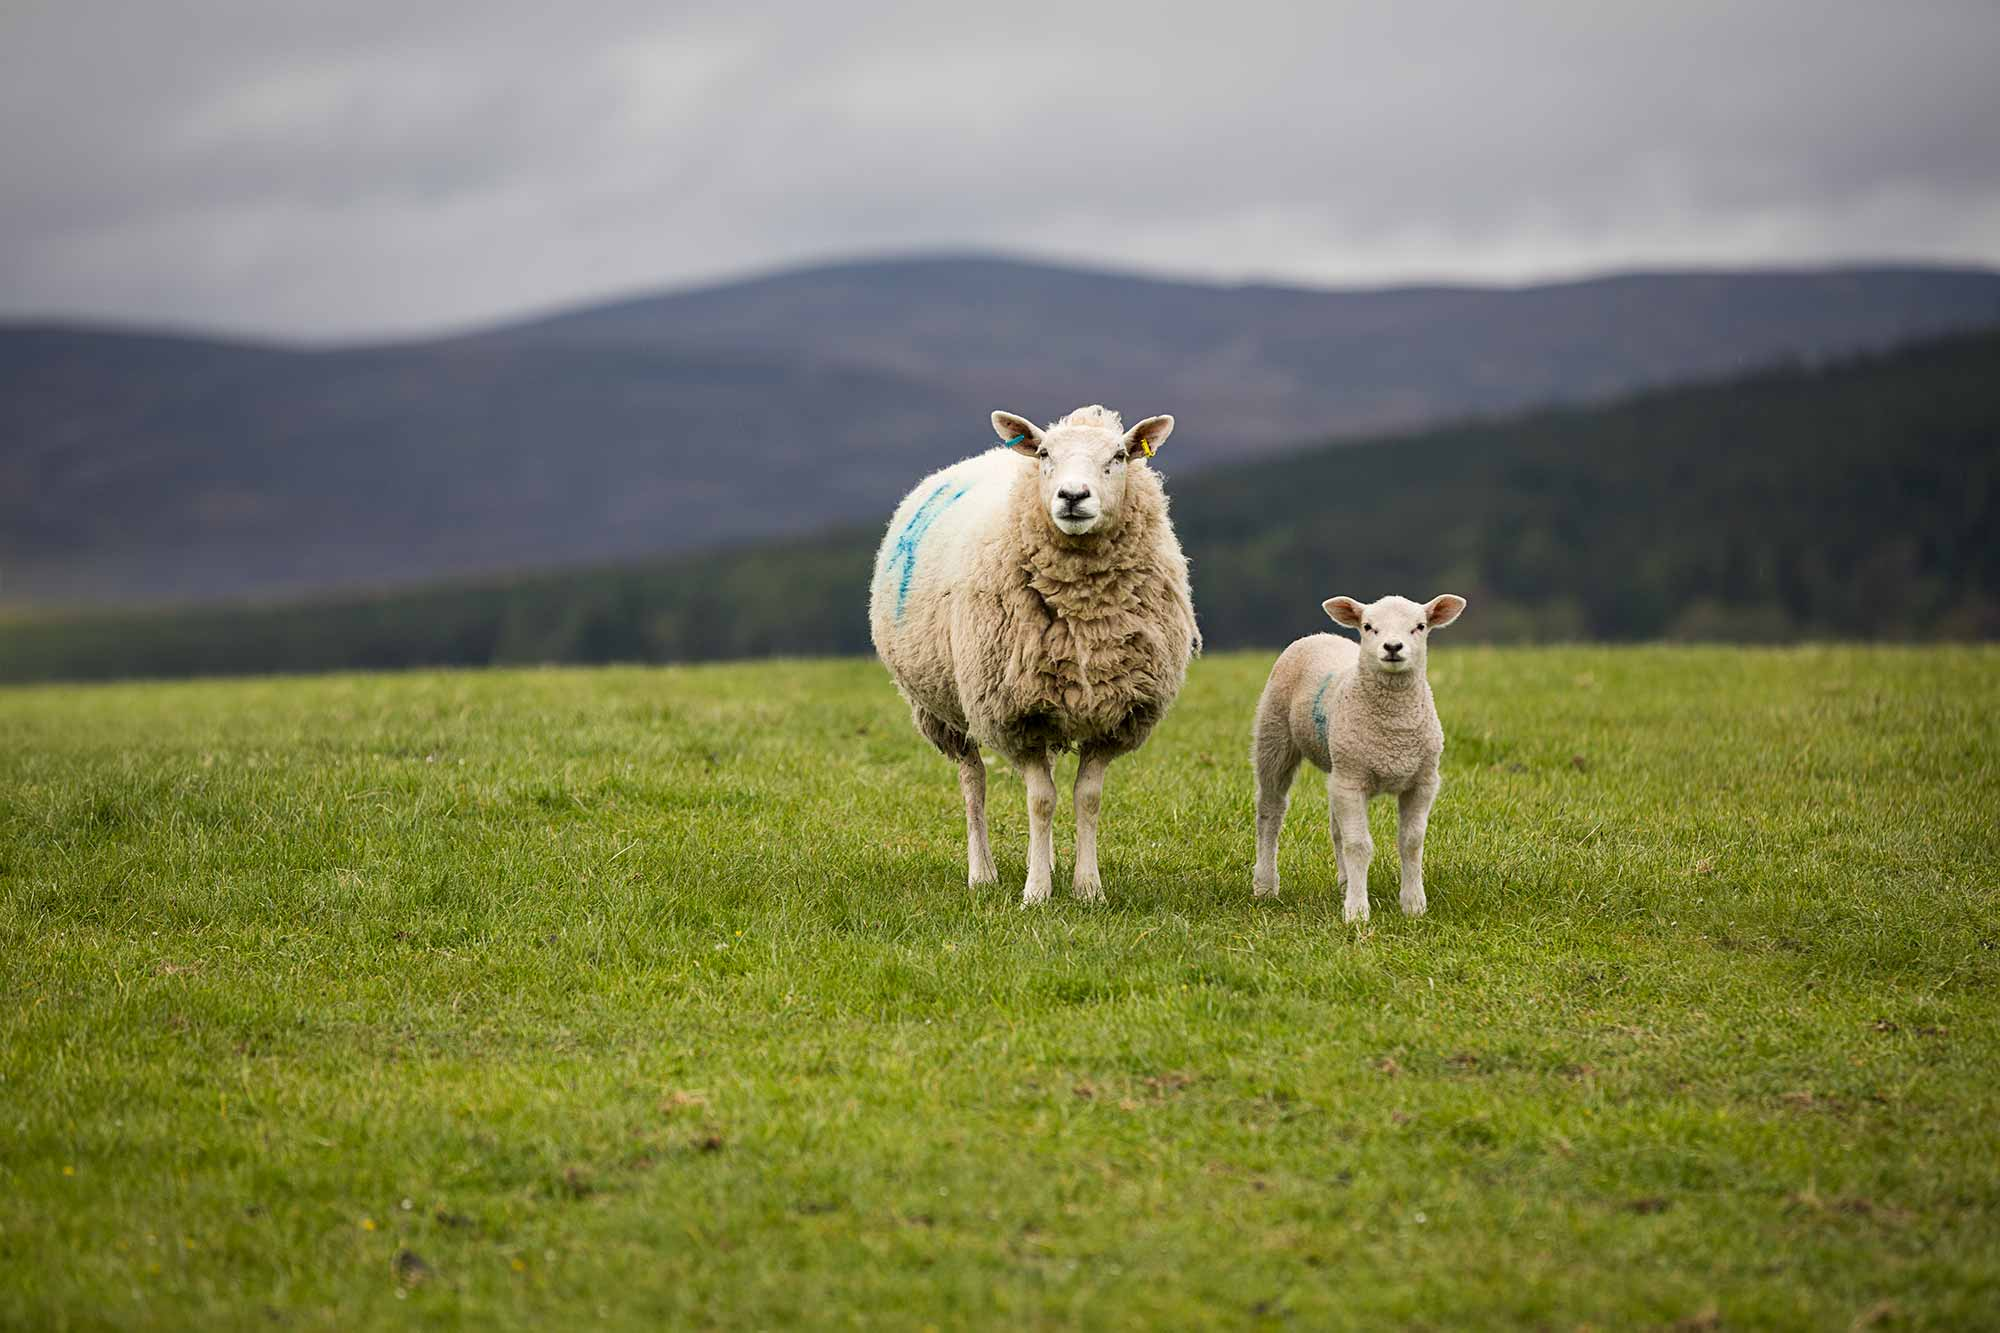 Scotland is home to almost seven million sheep and less than six million people. © ULLI MAIER & NISA MAIER